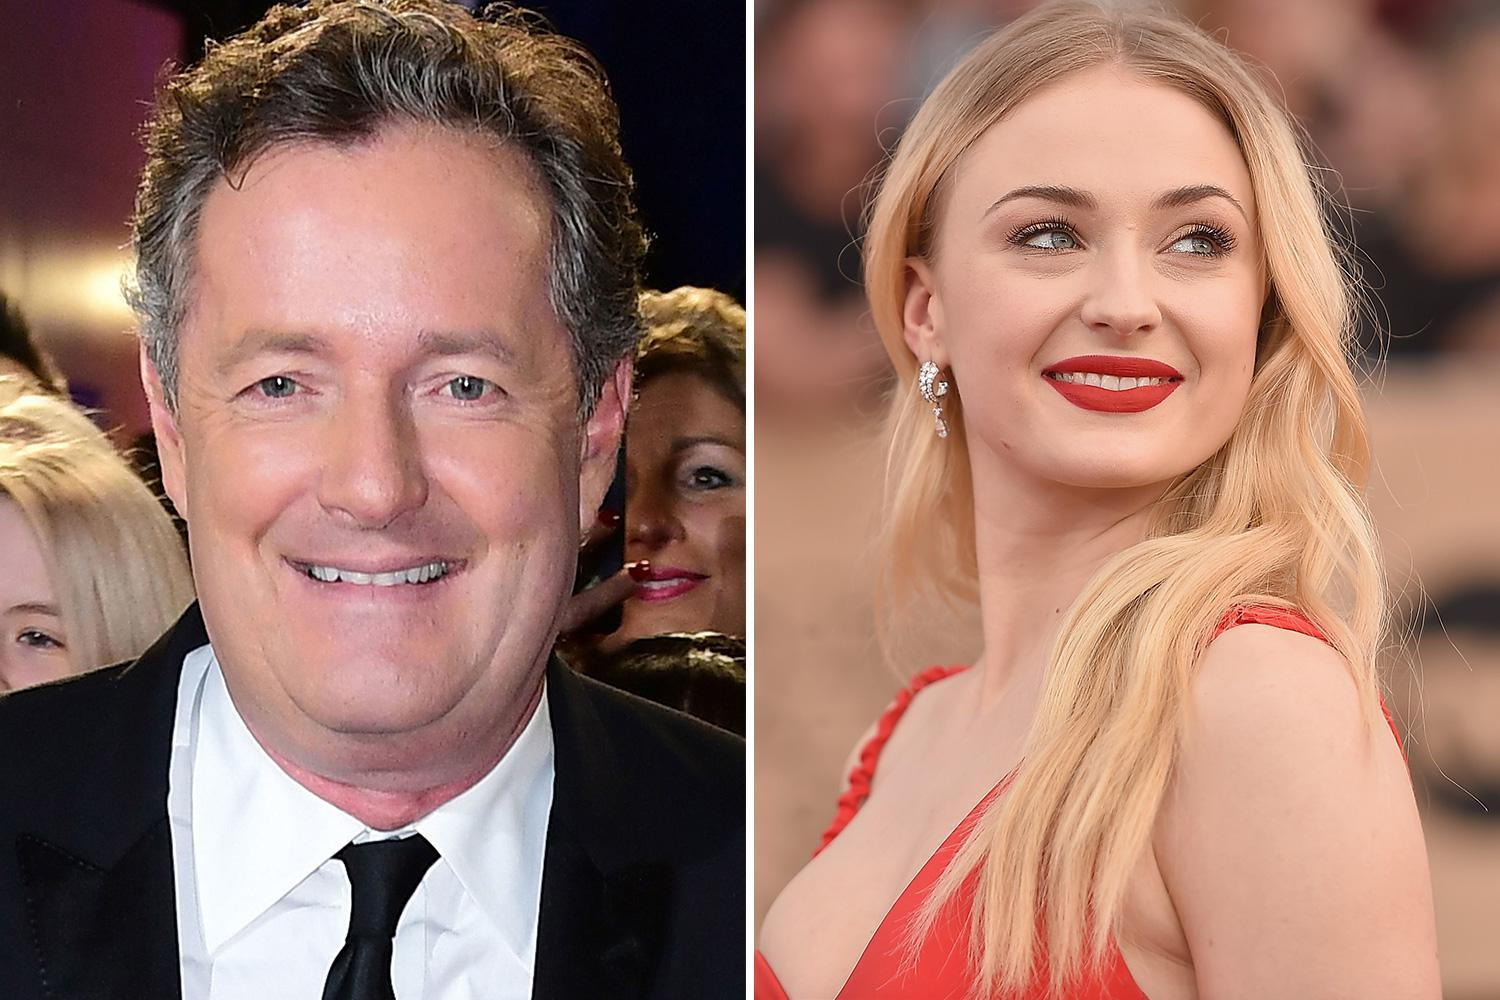 Piers Morgan and Game of Thrones' Sophie Turner in Twitter spat over 'fashionable' mental illness comments